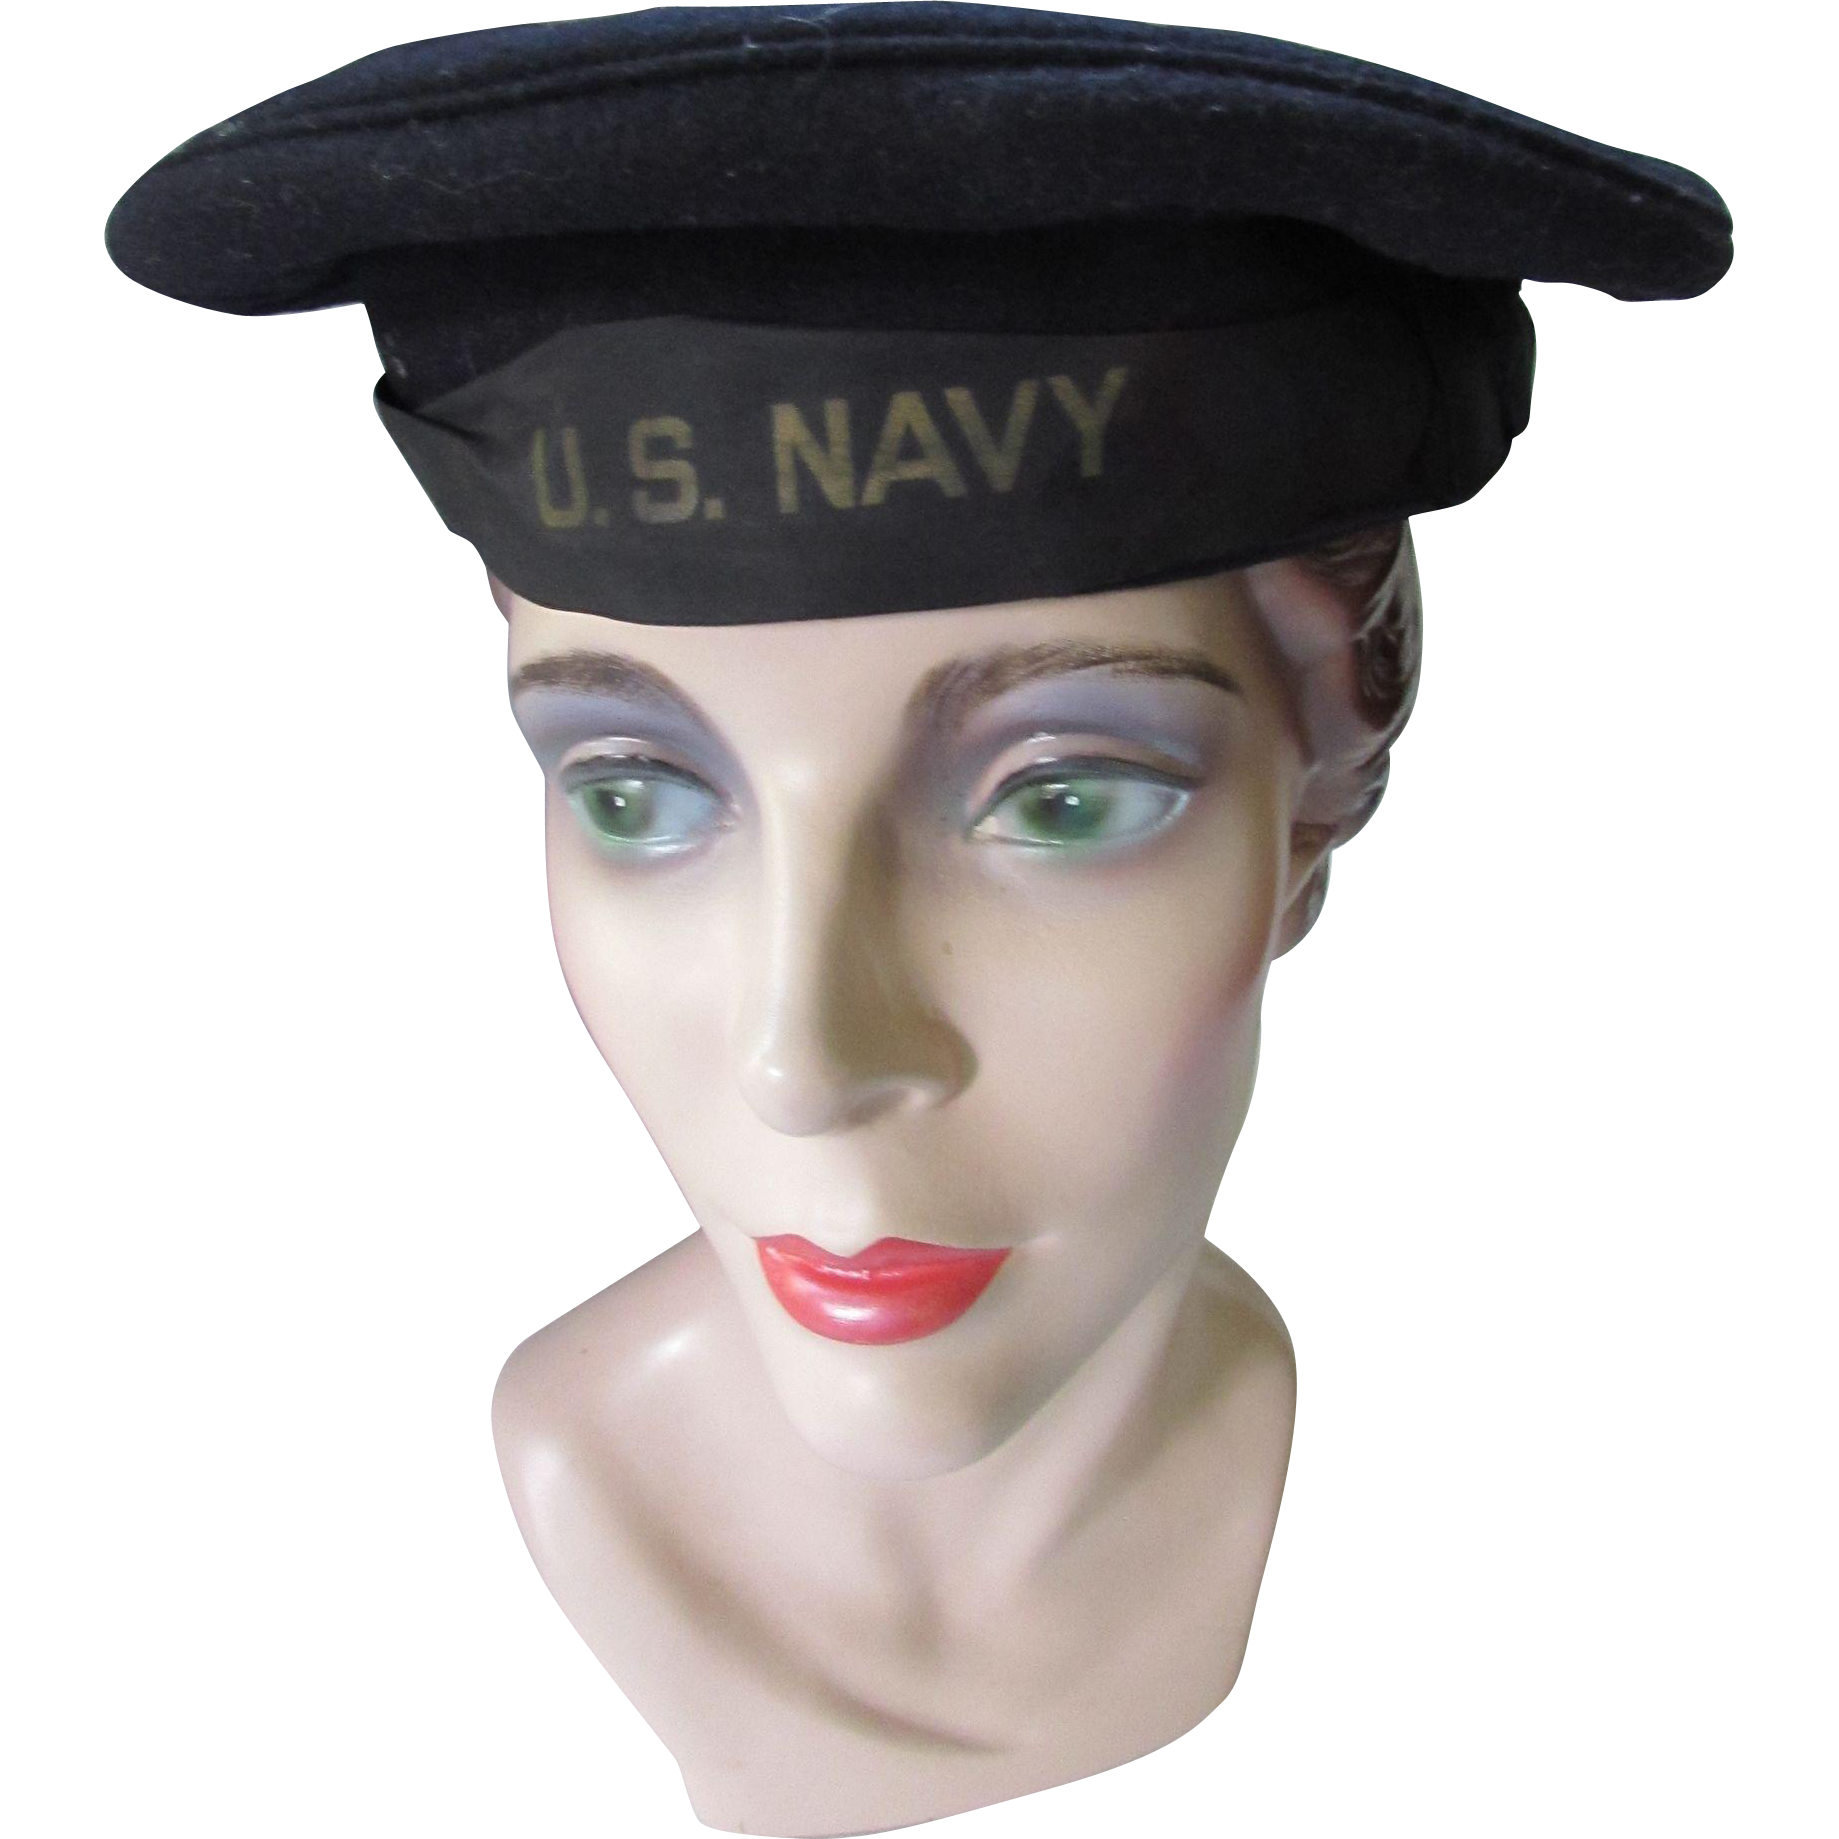 U S Navy WWII Era Flat Hat or Dixie Cup Hat or Donald Duck Hat